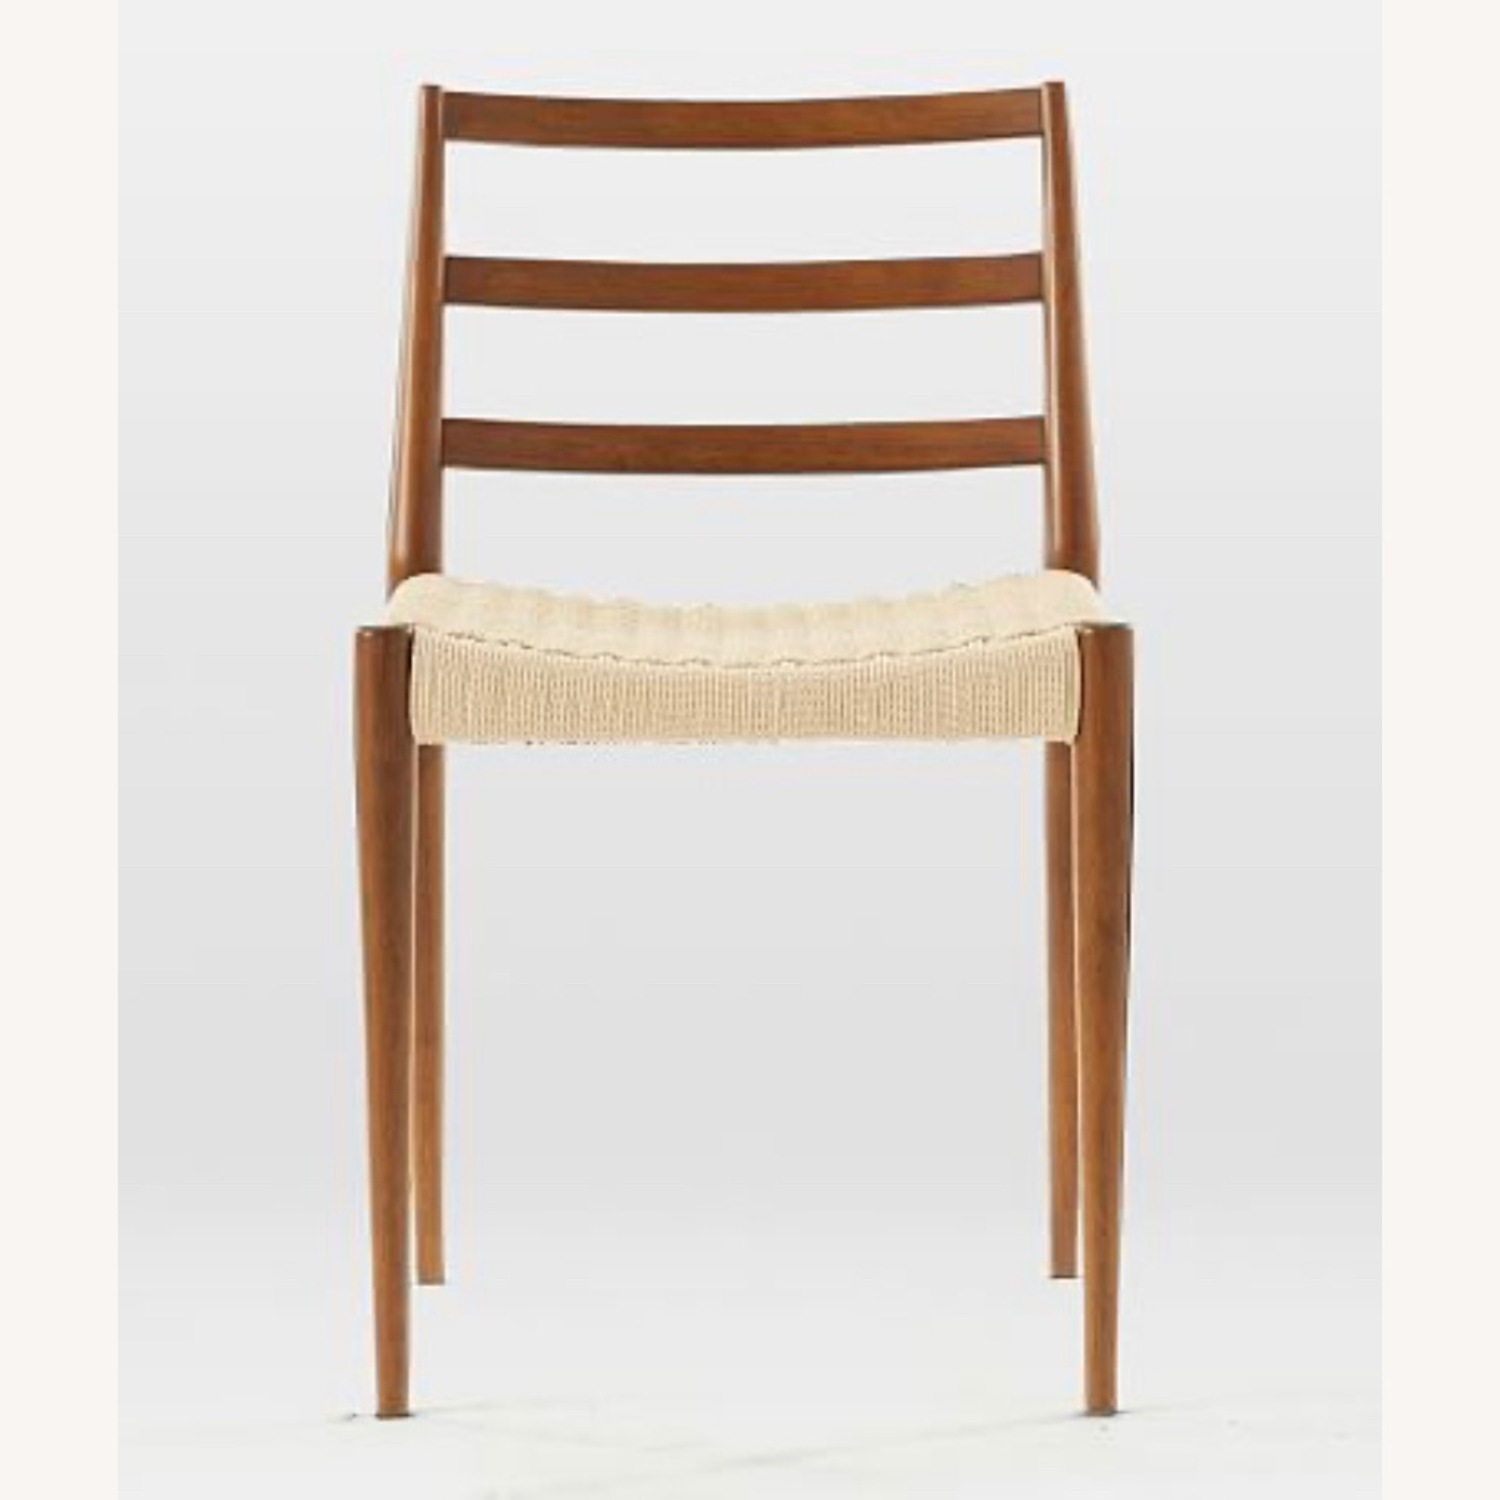 West Elm Holland Dining Chair Walnut/Natural - image-3